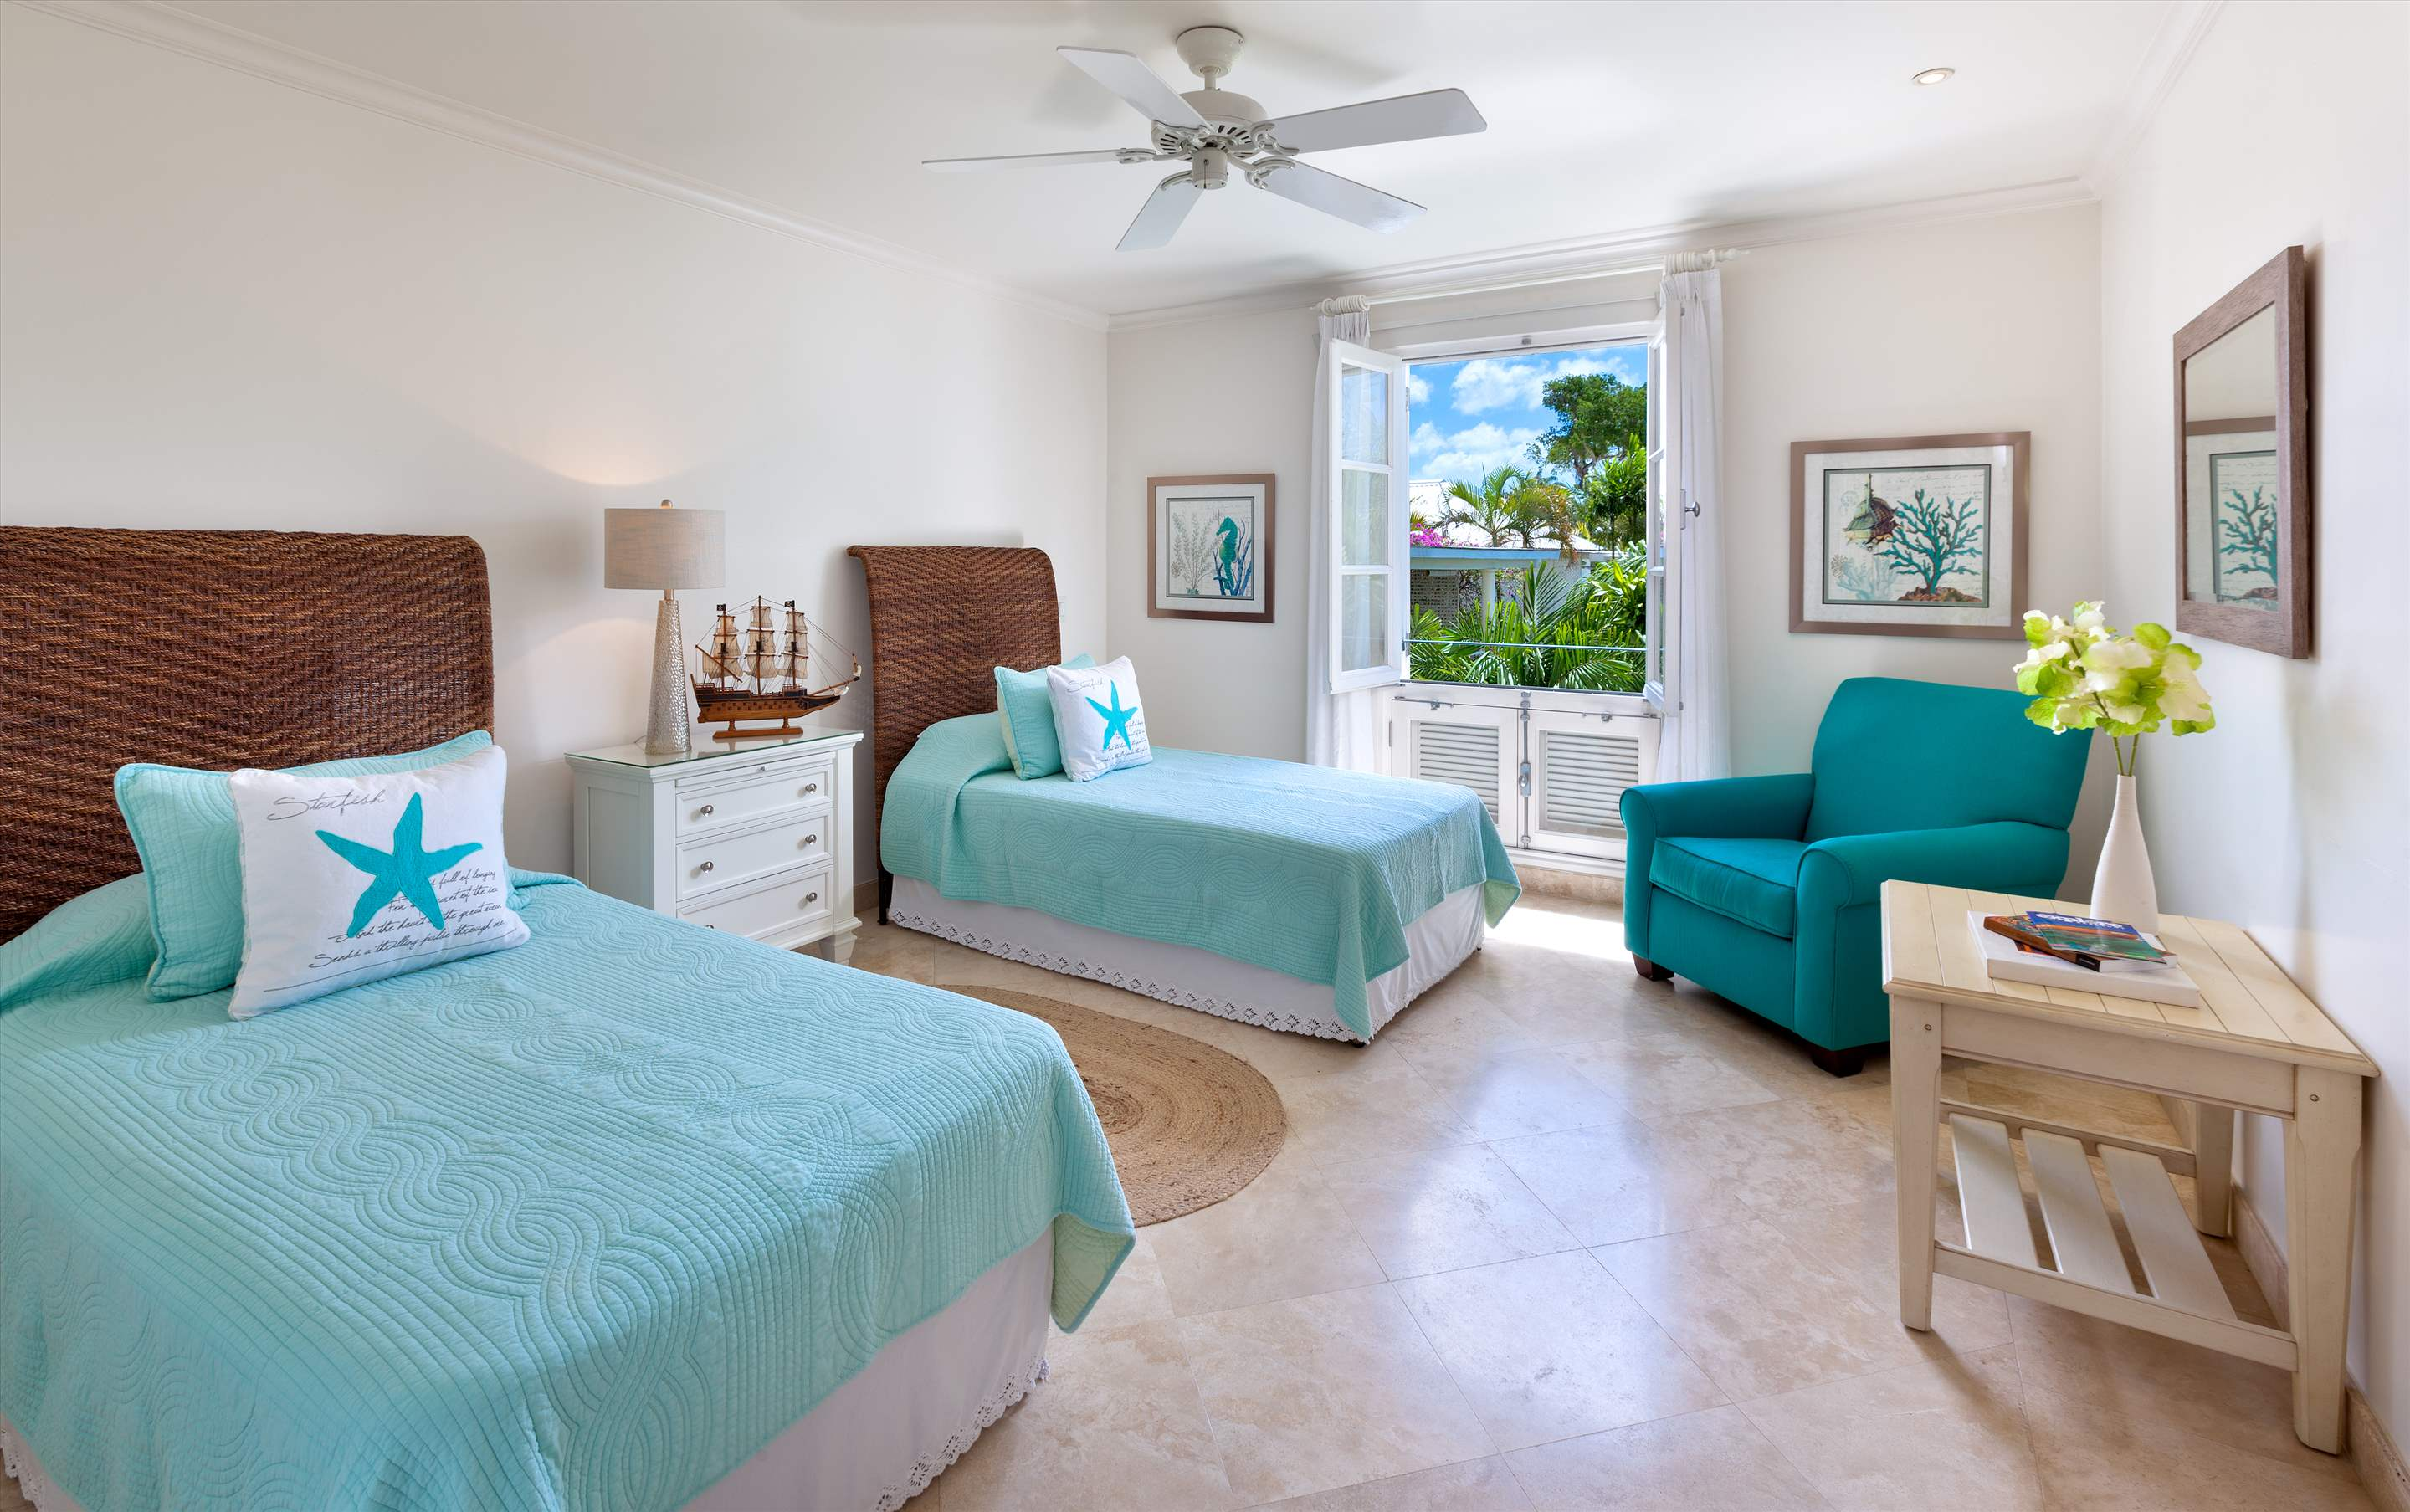 Schooner Bay 207, Two Bedroom Rate, 2 bedroom apartment in St. James & West Coast, Barbados Photo #12